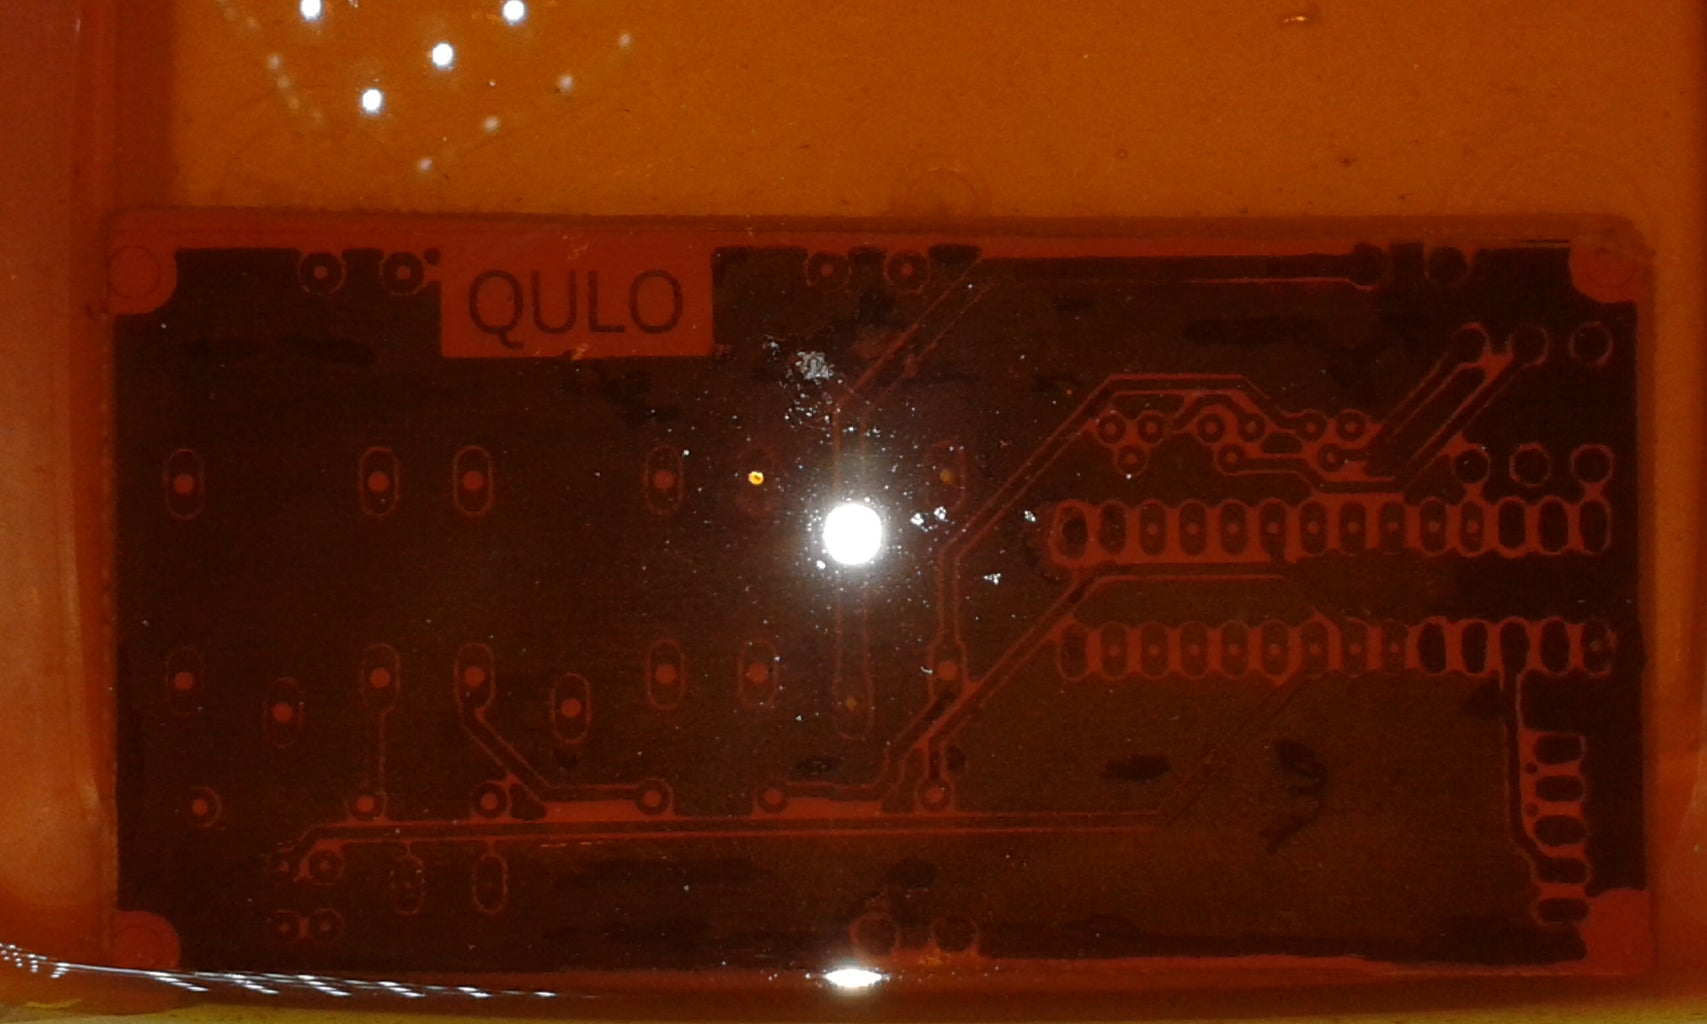 PCB Etching and Component Soldering